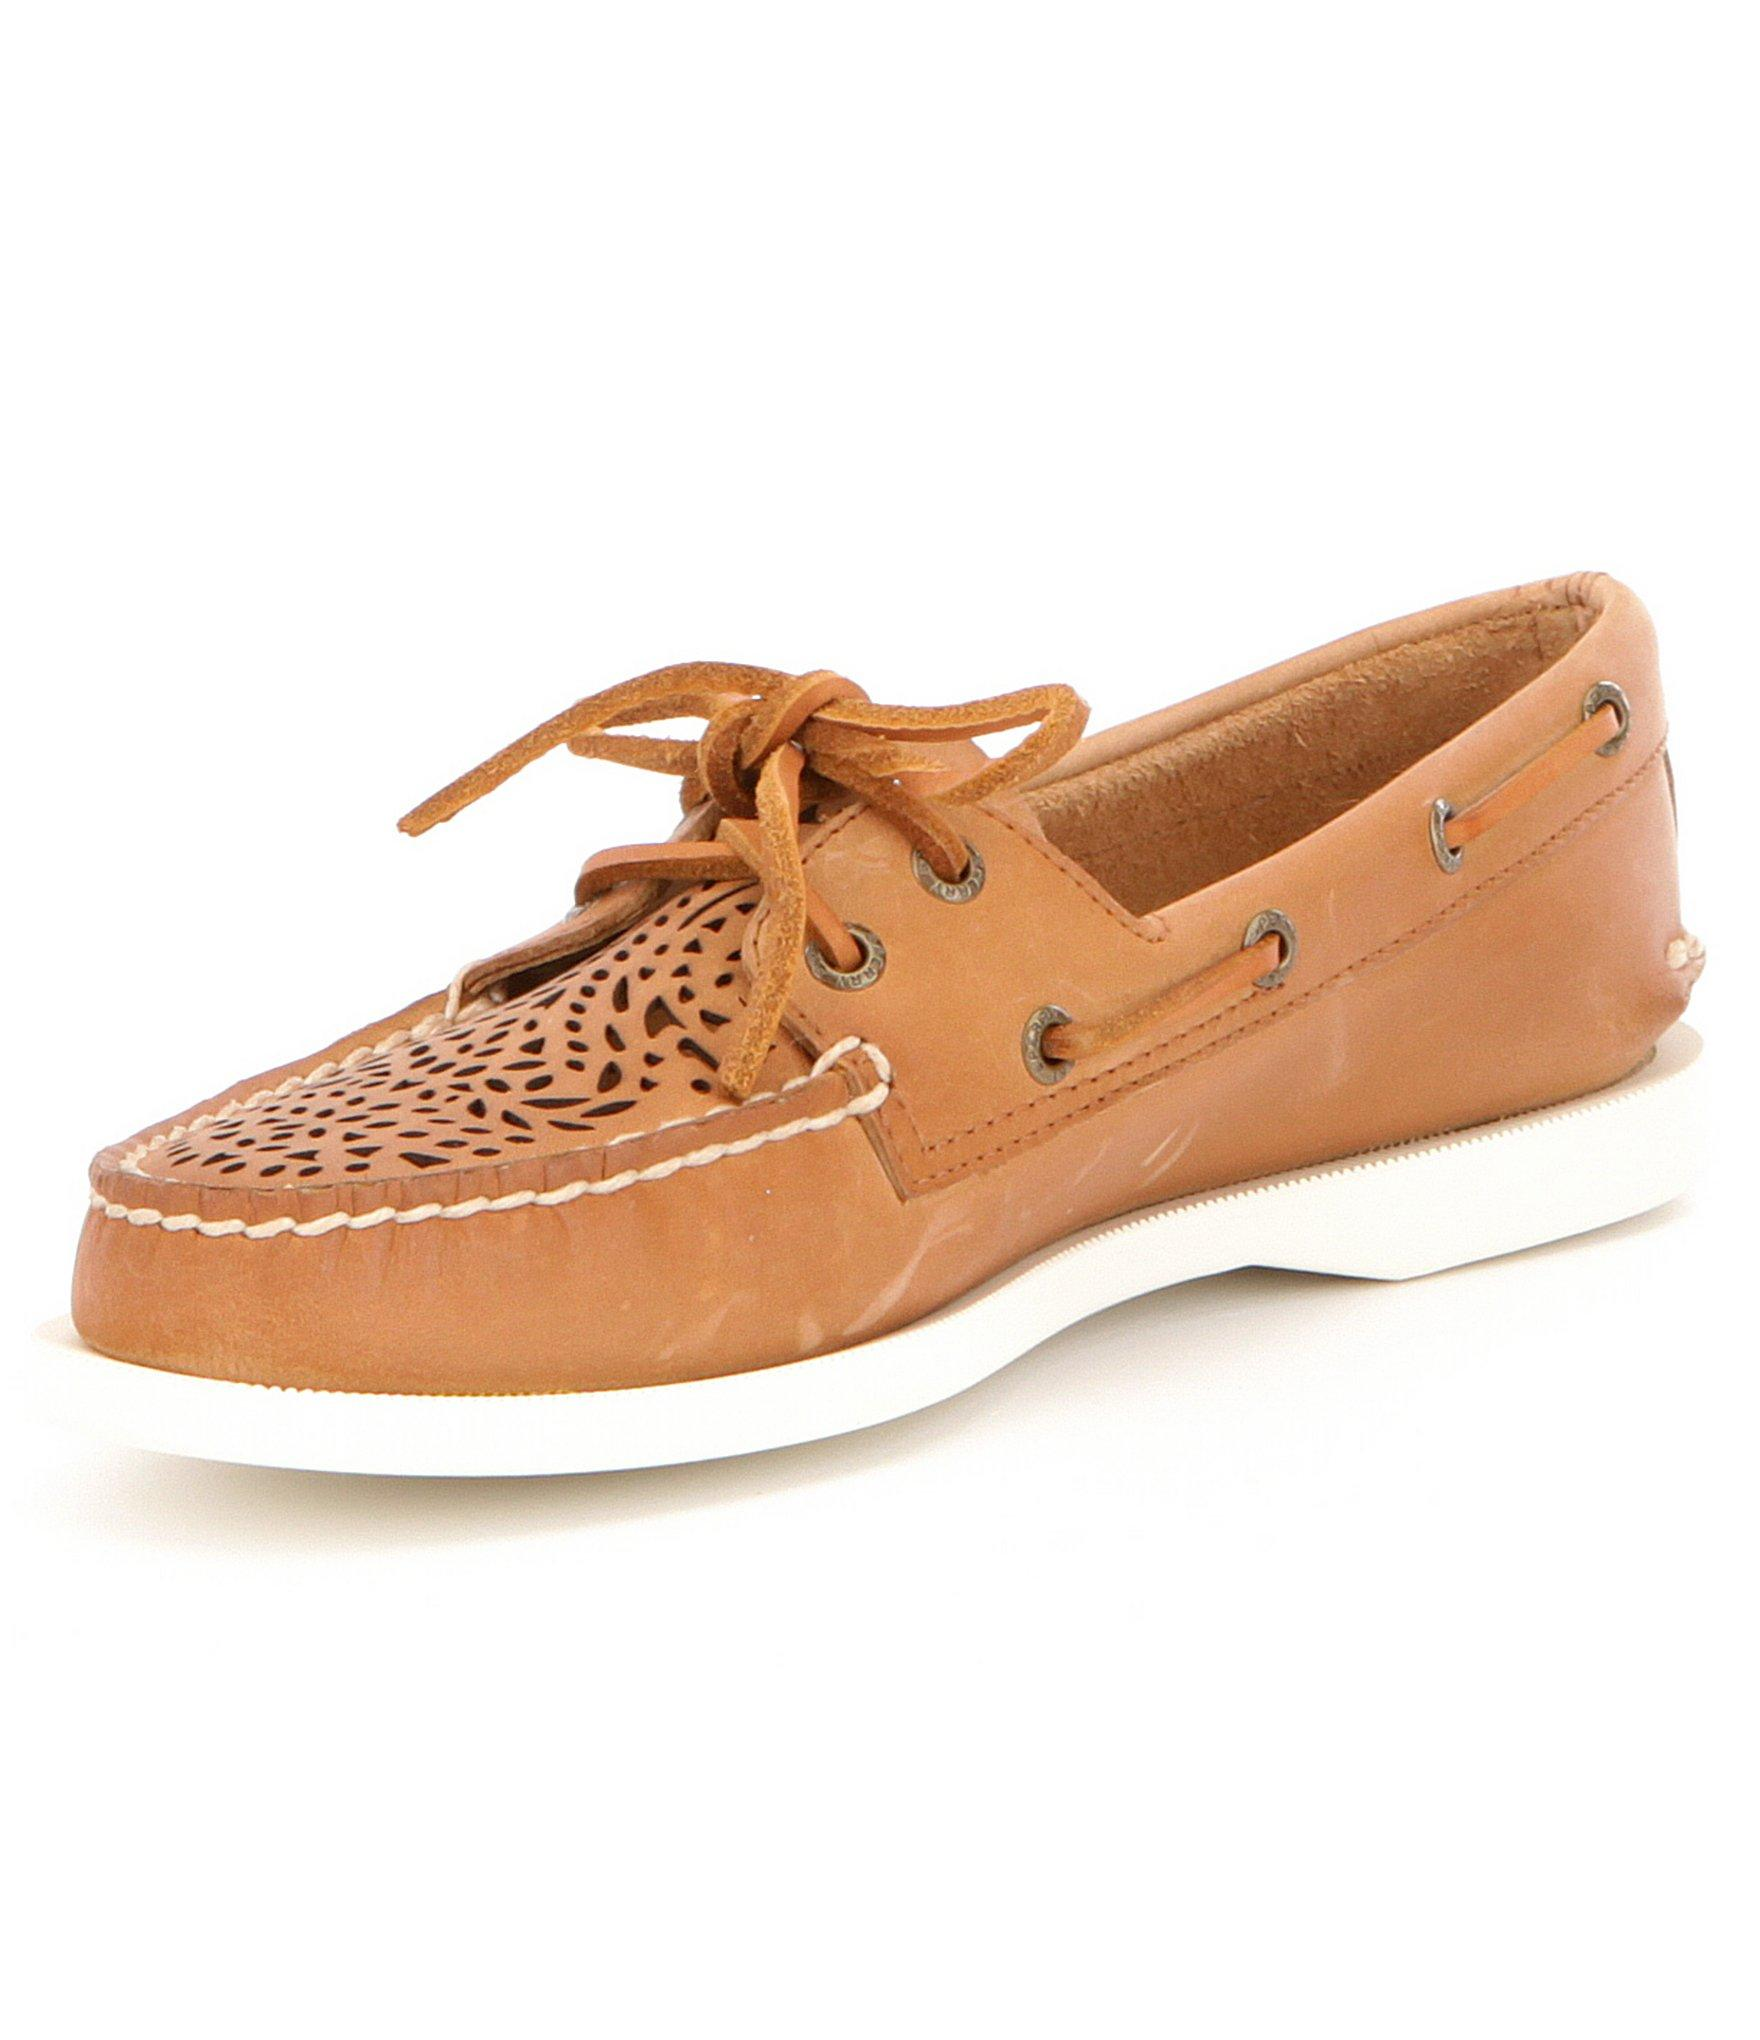 sperry top sider sky sail canvas vulcanized leather boat